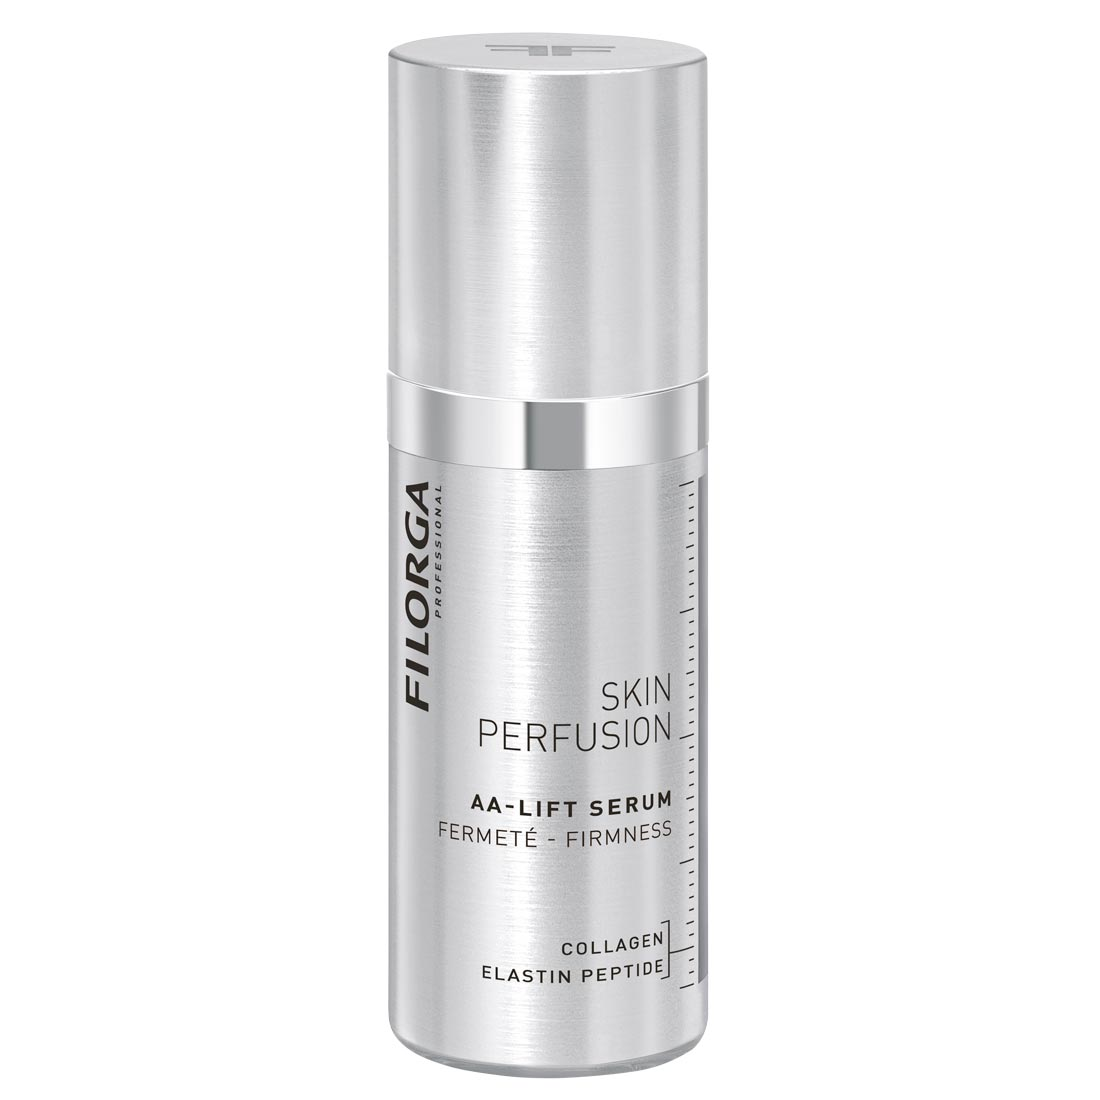 SKIN PERFUSION 5HP-YOUTH CREAM 1